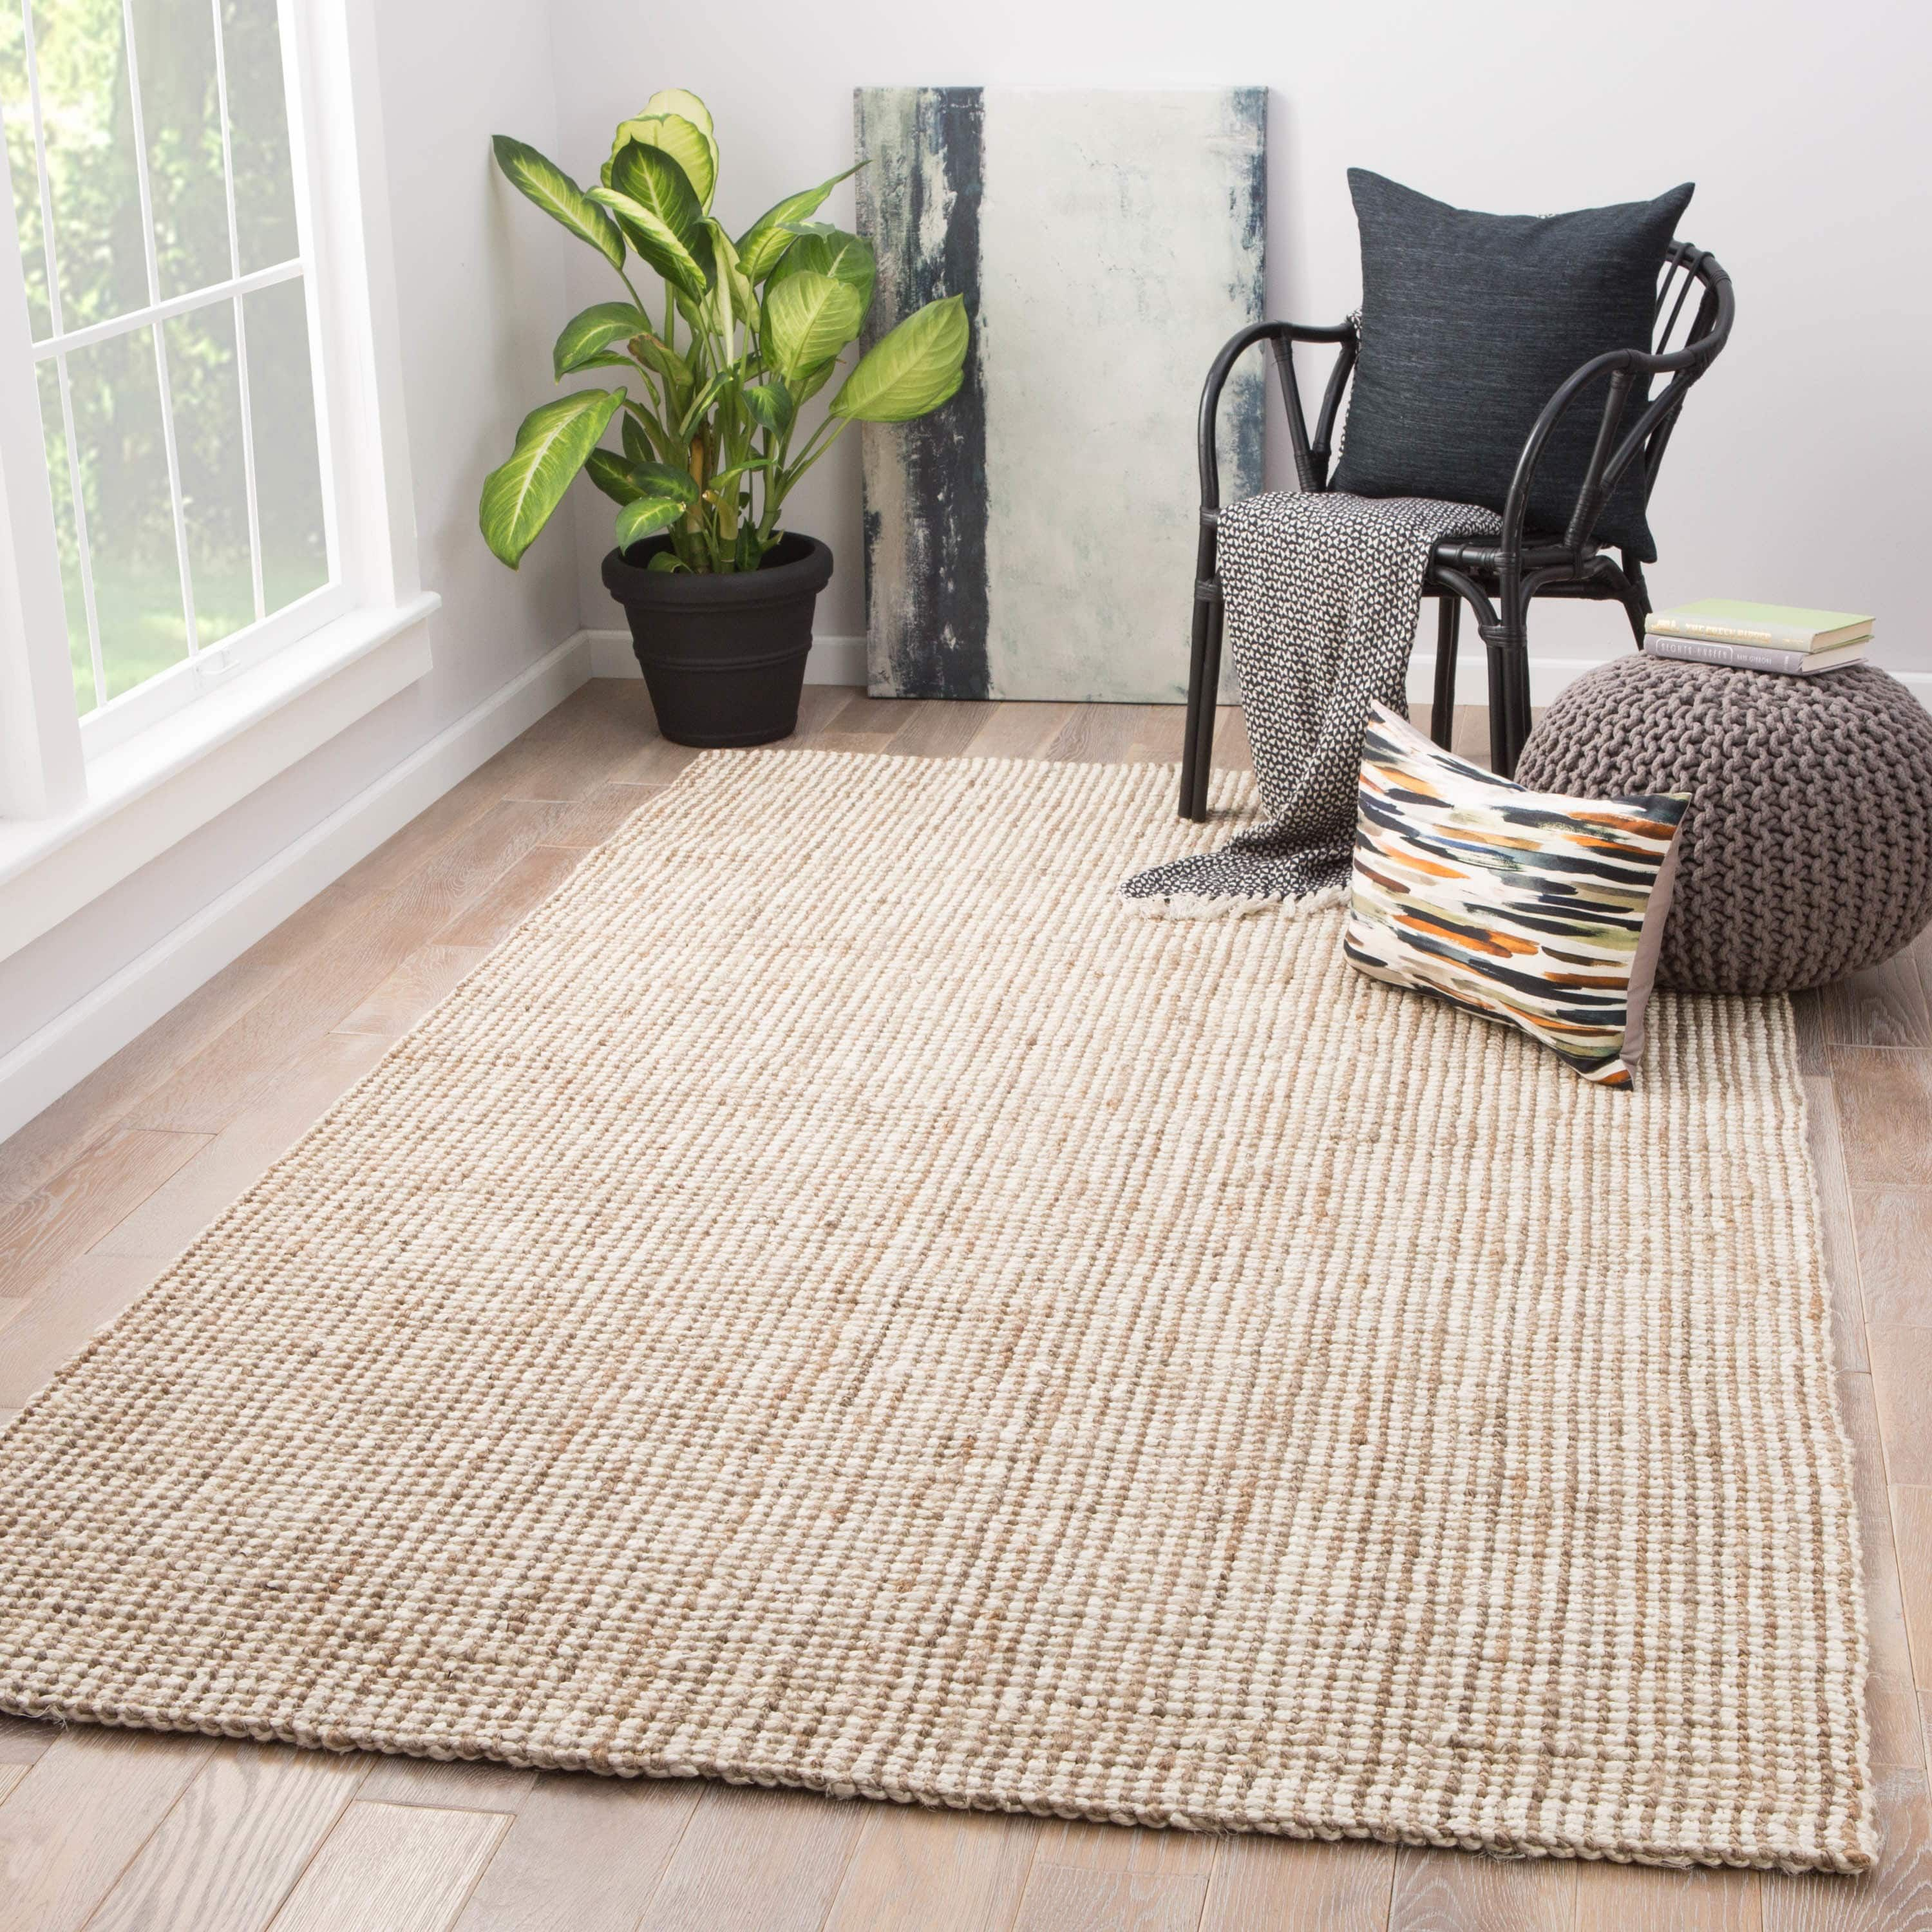 Havenside Home Chincoteague Solid White Tan Natural Jute Area Rug 10 X 14 Area Rugs Rugs Natural Rug